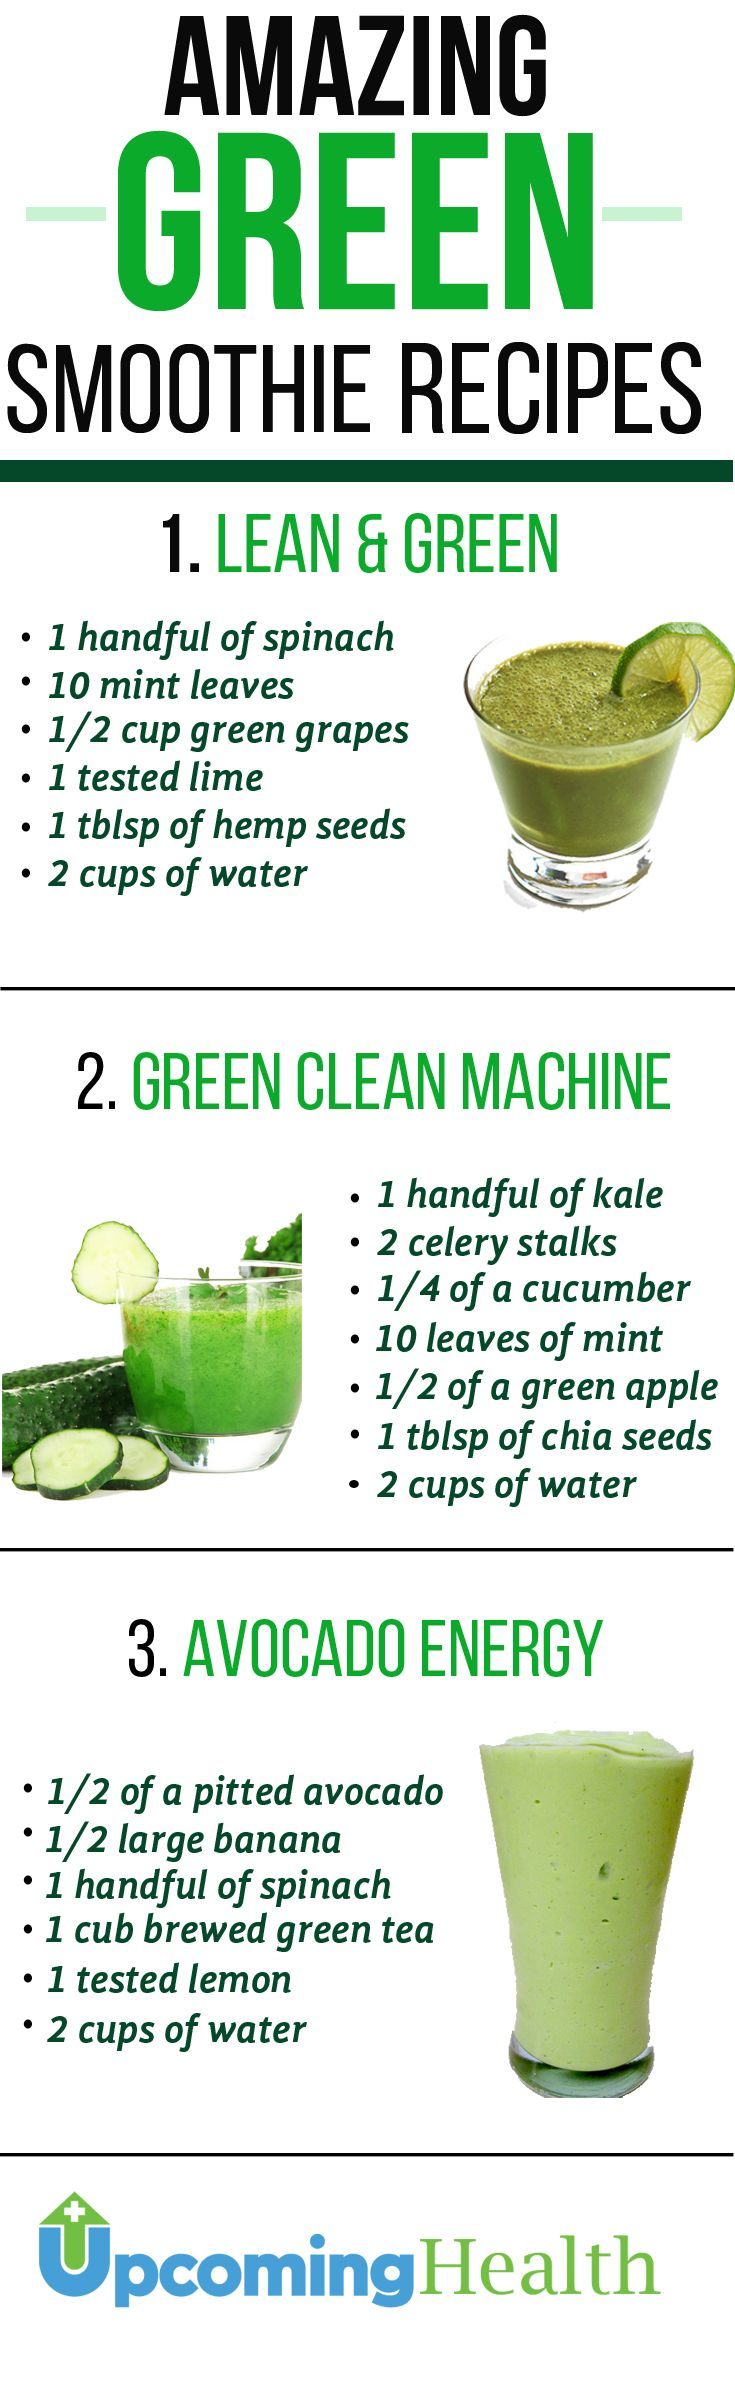 Green smoothies are extremely healthy and great for those looking to shed a couple of pounds. They are packed with nutrients and fiber. Green smoothies are the perfect way to get your daily greens serving. Try these easy to make green smoothie recipes and you will fall in love! See more at upcominghealth.com #TheBeautyAddict